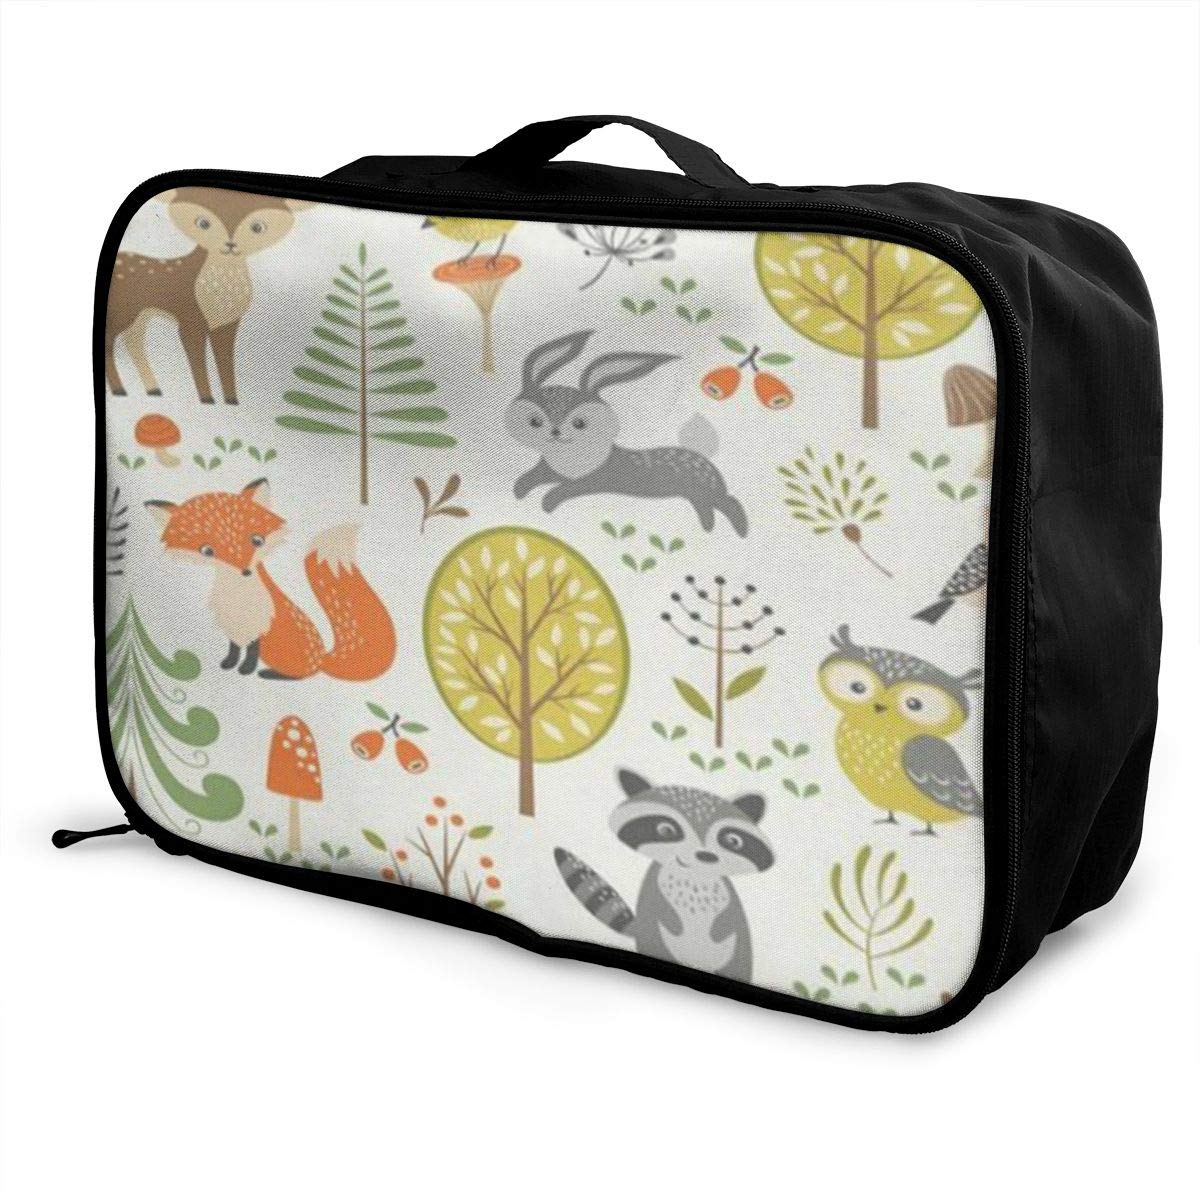 Forest Animal Green Canvas Travel Weekender Bag,Fashion Custom Lightweight Large Capacity Portable Luggage Bag,Suitcase Trolley Bag